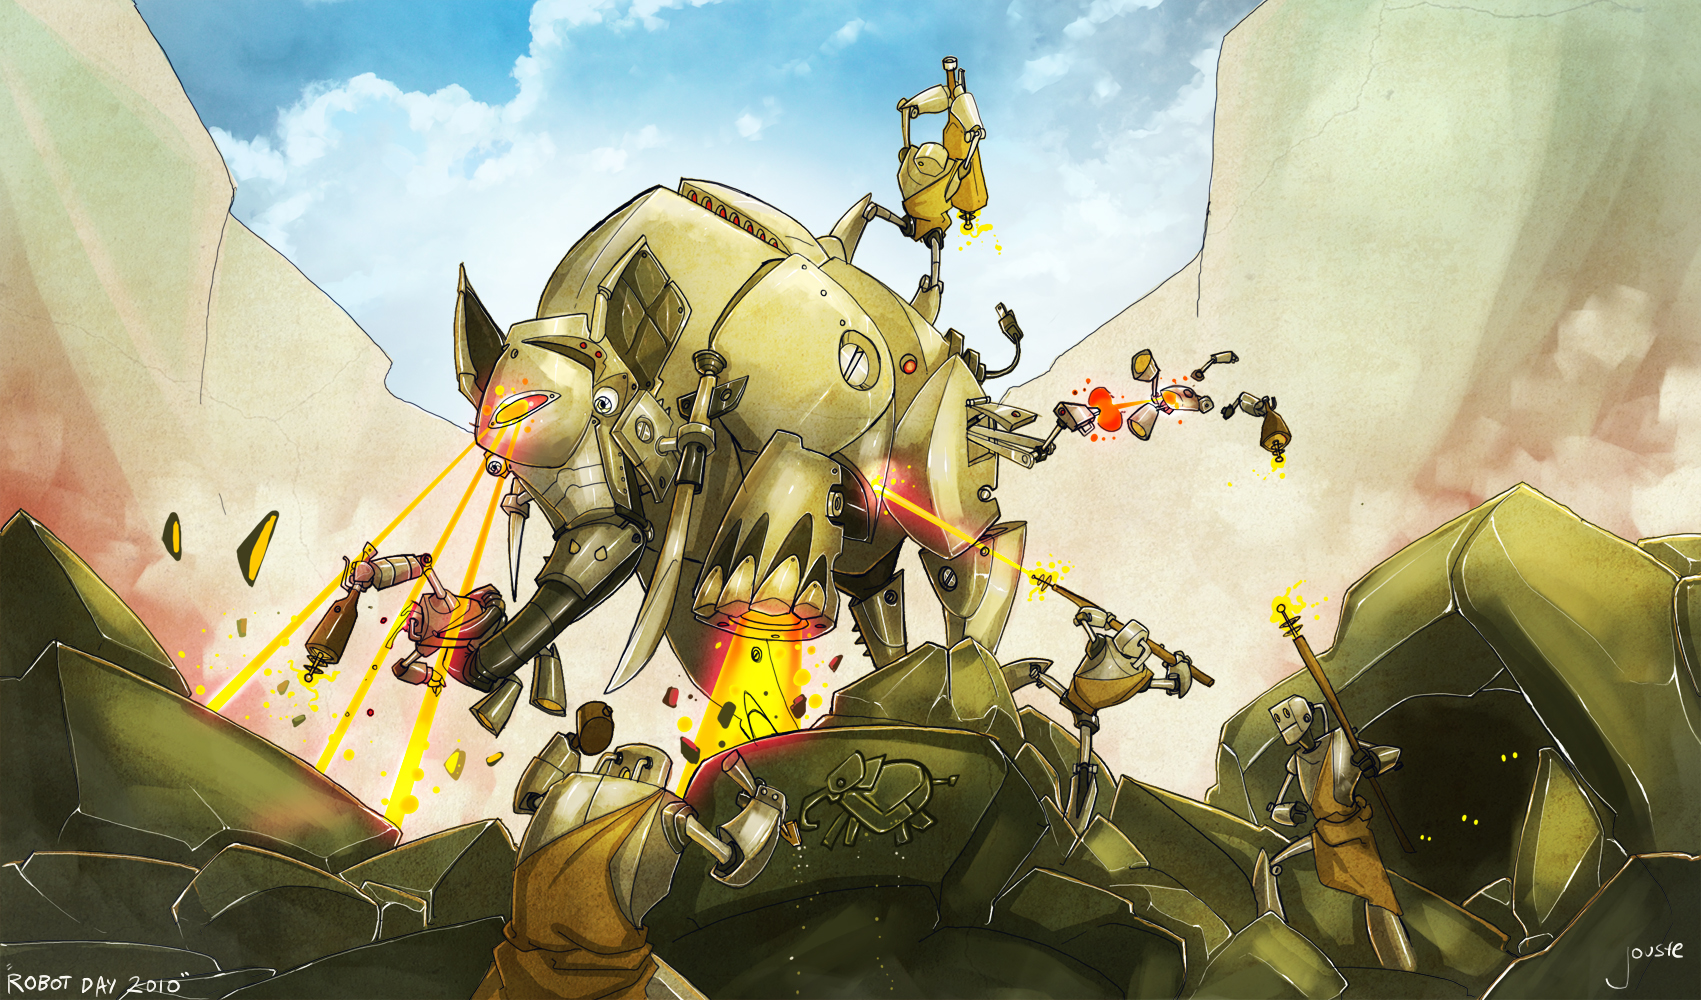 mecha-mammoth mayhem!